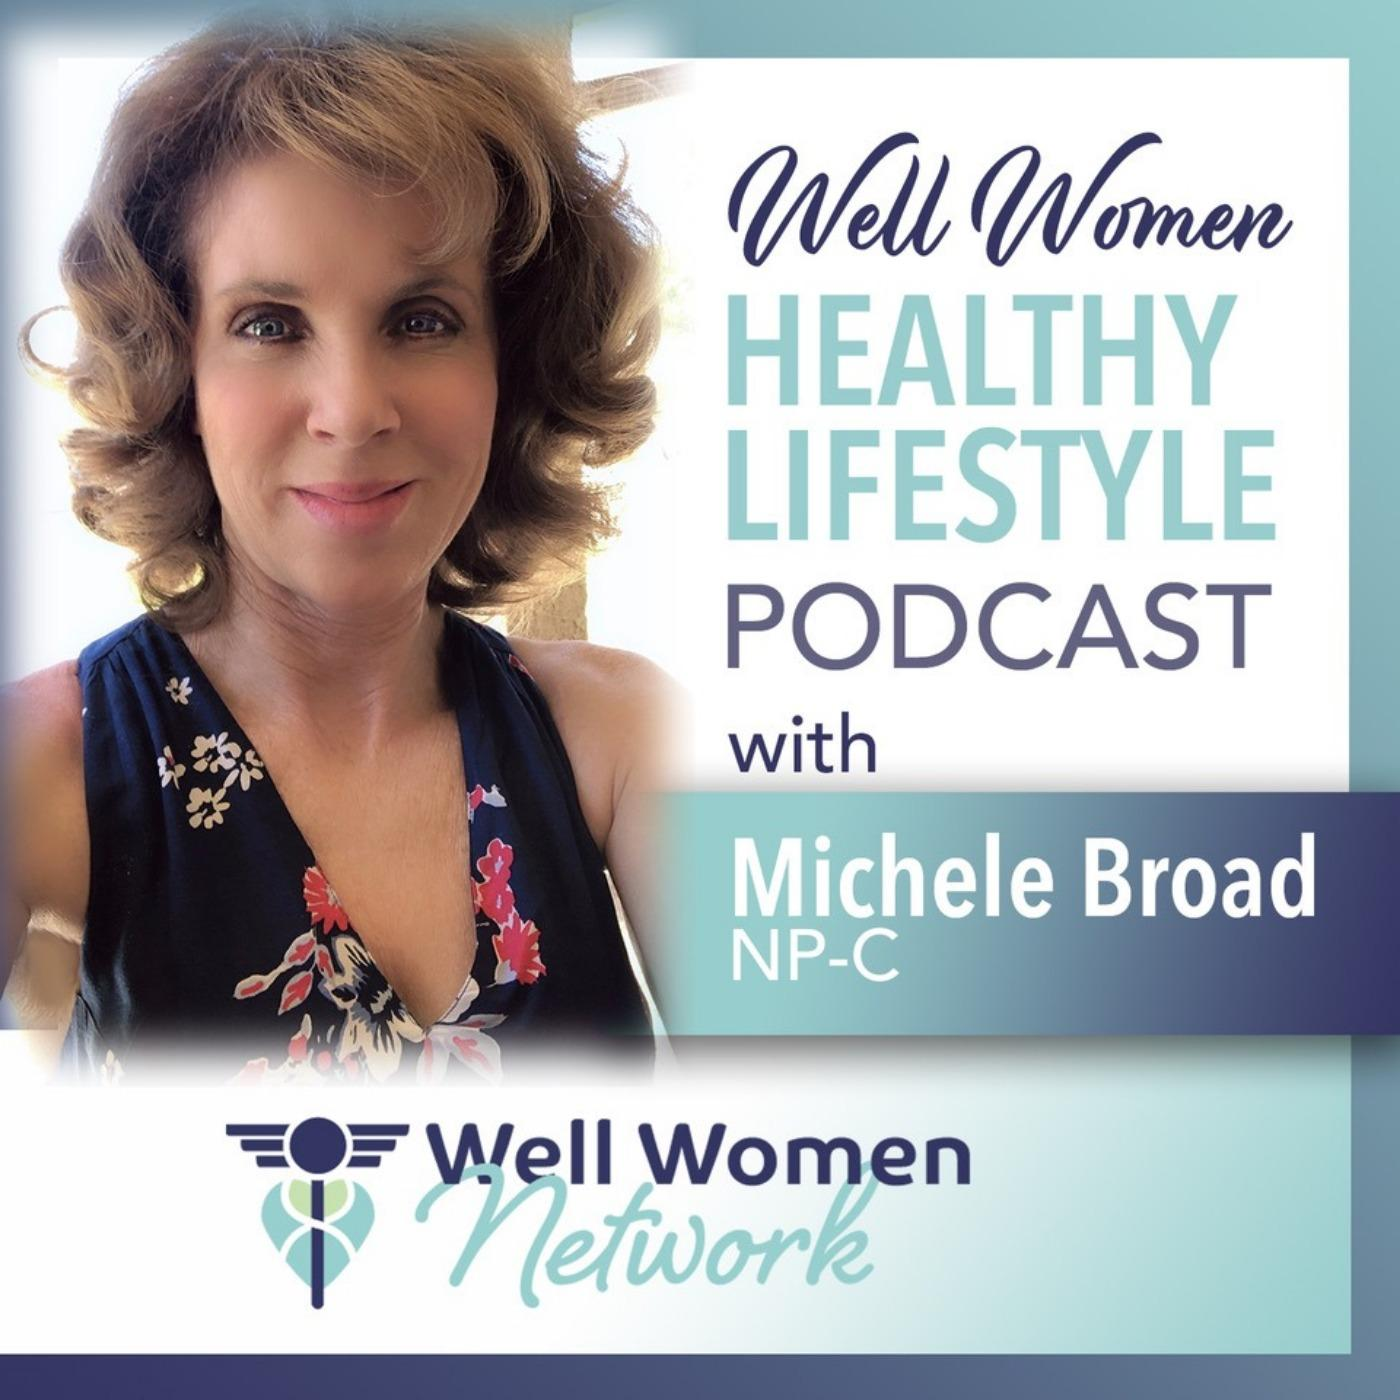 Well Women Healthy Lifestyle Podcast - Michele Broad